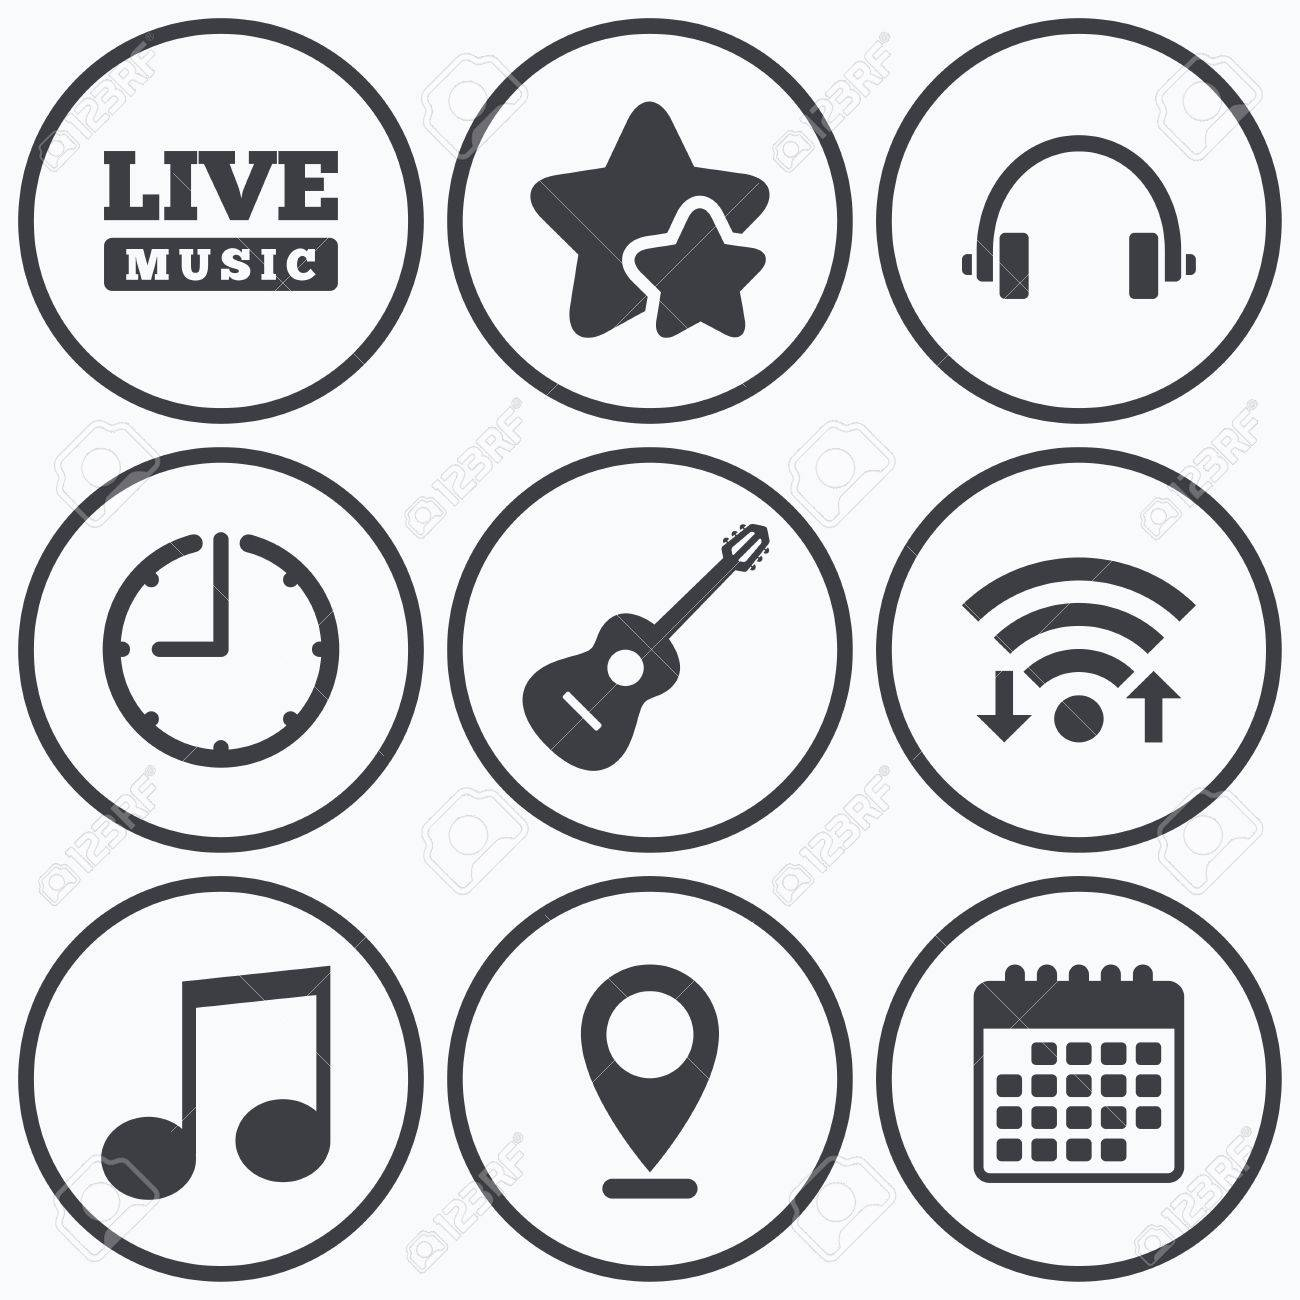 Clock wifi and stars icons musical elements icons musical calendar symbol clock wifi and stars icons musical elements icons musical note key and live biocorpaavc Images